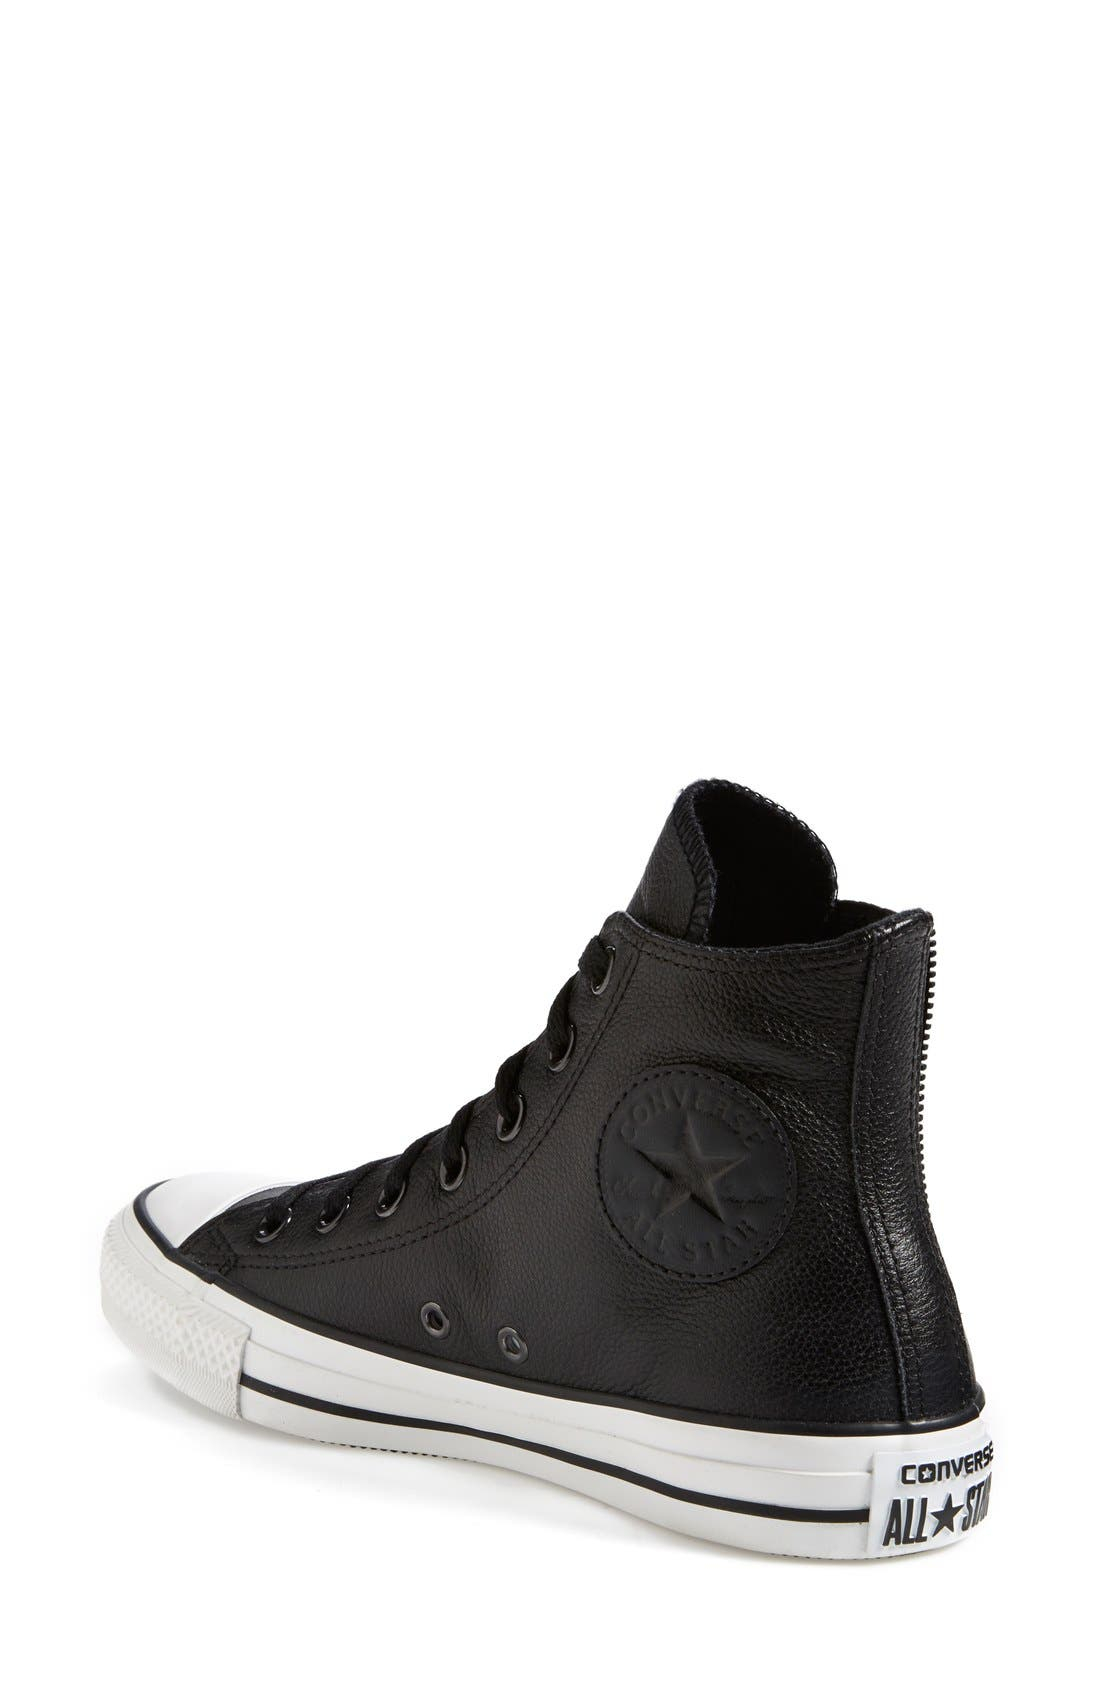 Alternate Image 2  - Converse Chuck Taylor® All Star® 'Chelsee' Leather Sneaker (Women) (Nordstrom Exclusive)